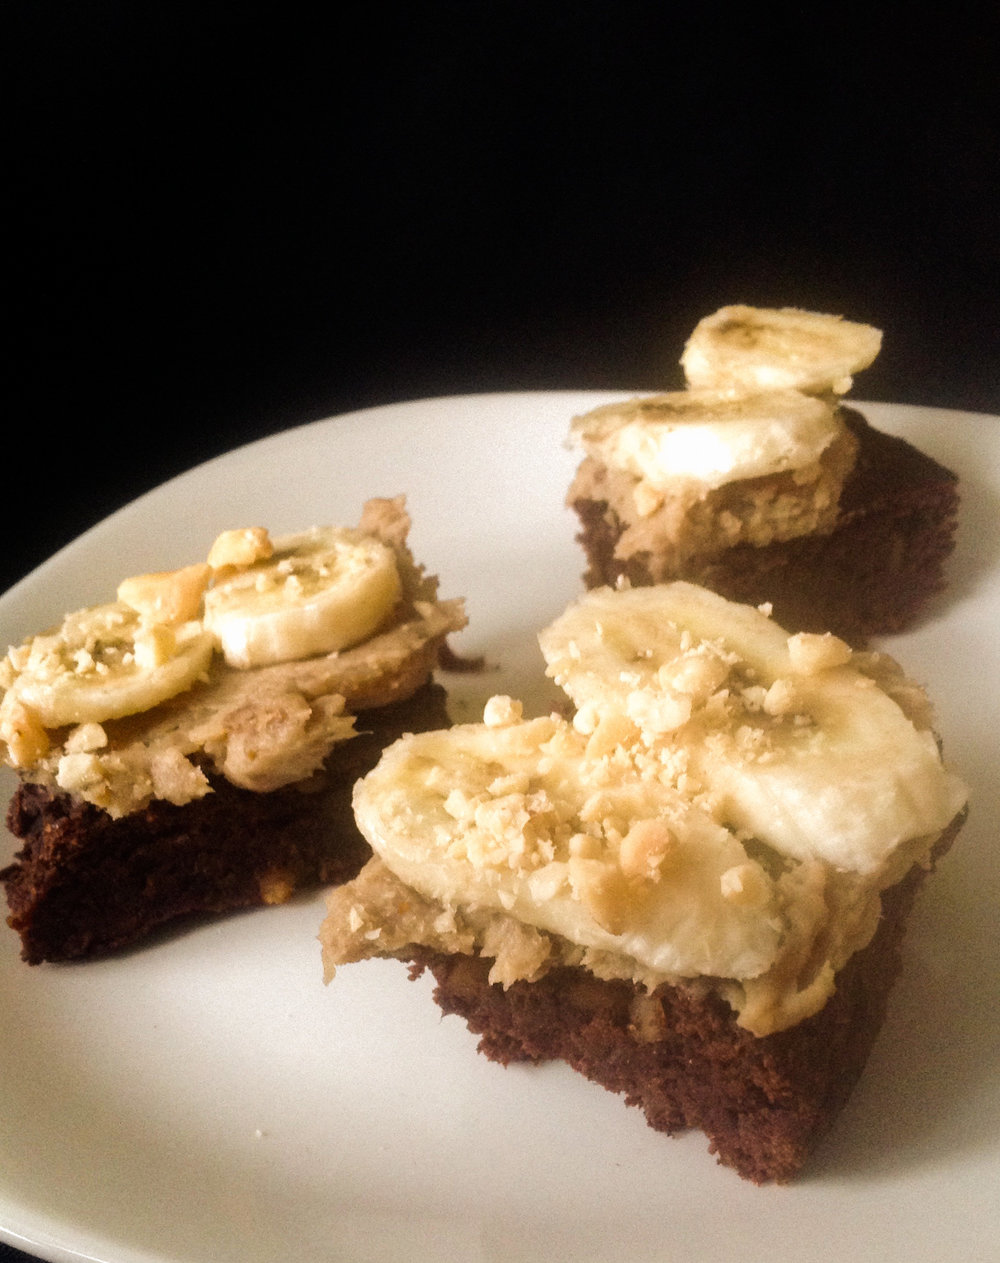 Vegan Chocolate Peanut Butter Banana Monkey Bars - Healthy, Whole Grain, Plant-Based, Oil-Free, Dessert, Kid-Friendly, Frosting